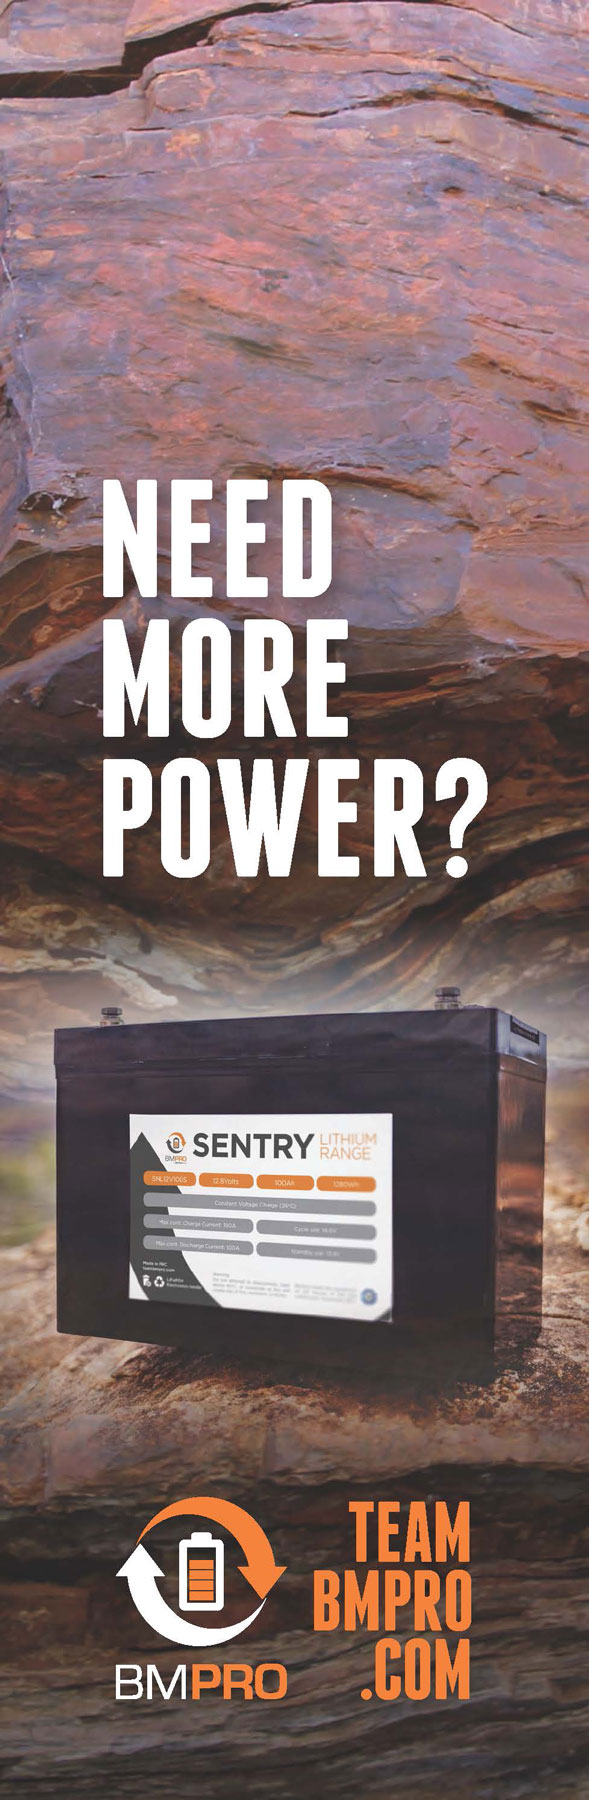 lithium rv battery BMPRO Sentry